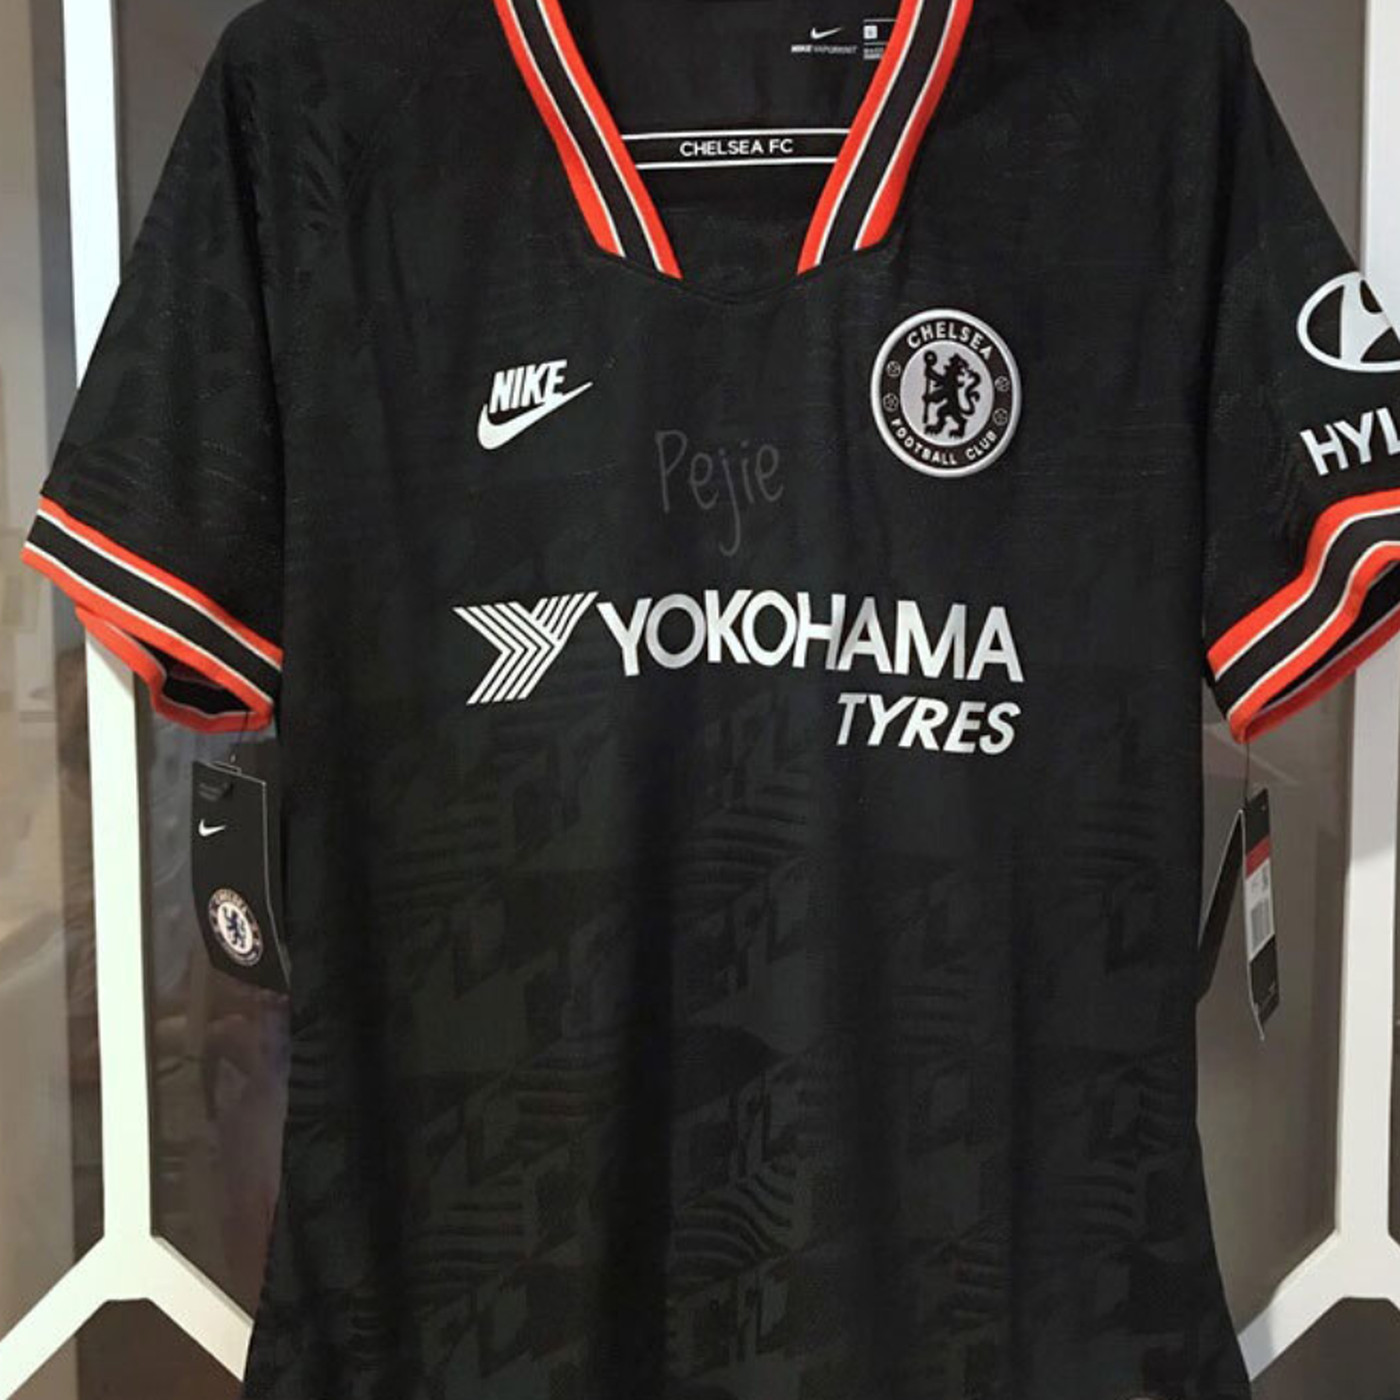 promo code 4652f edbf0 New Nike 2019-20 Chelsea third shirt spotted in the wild ...